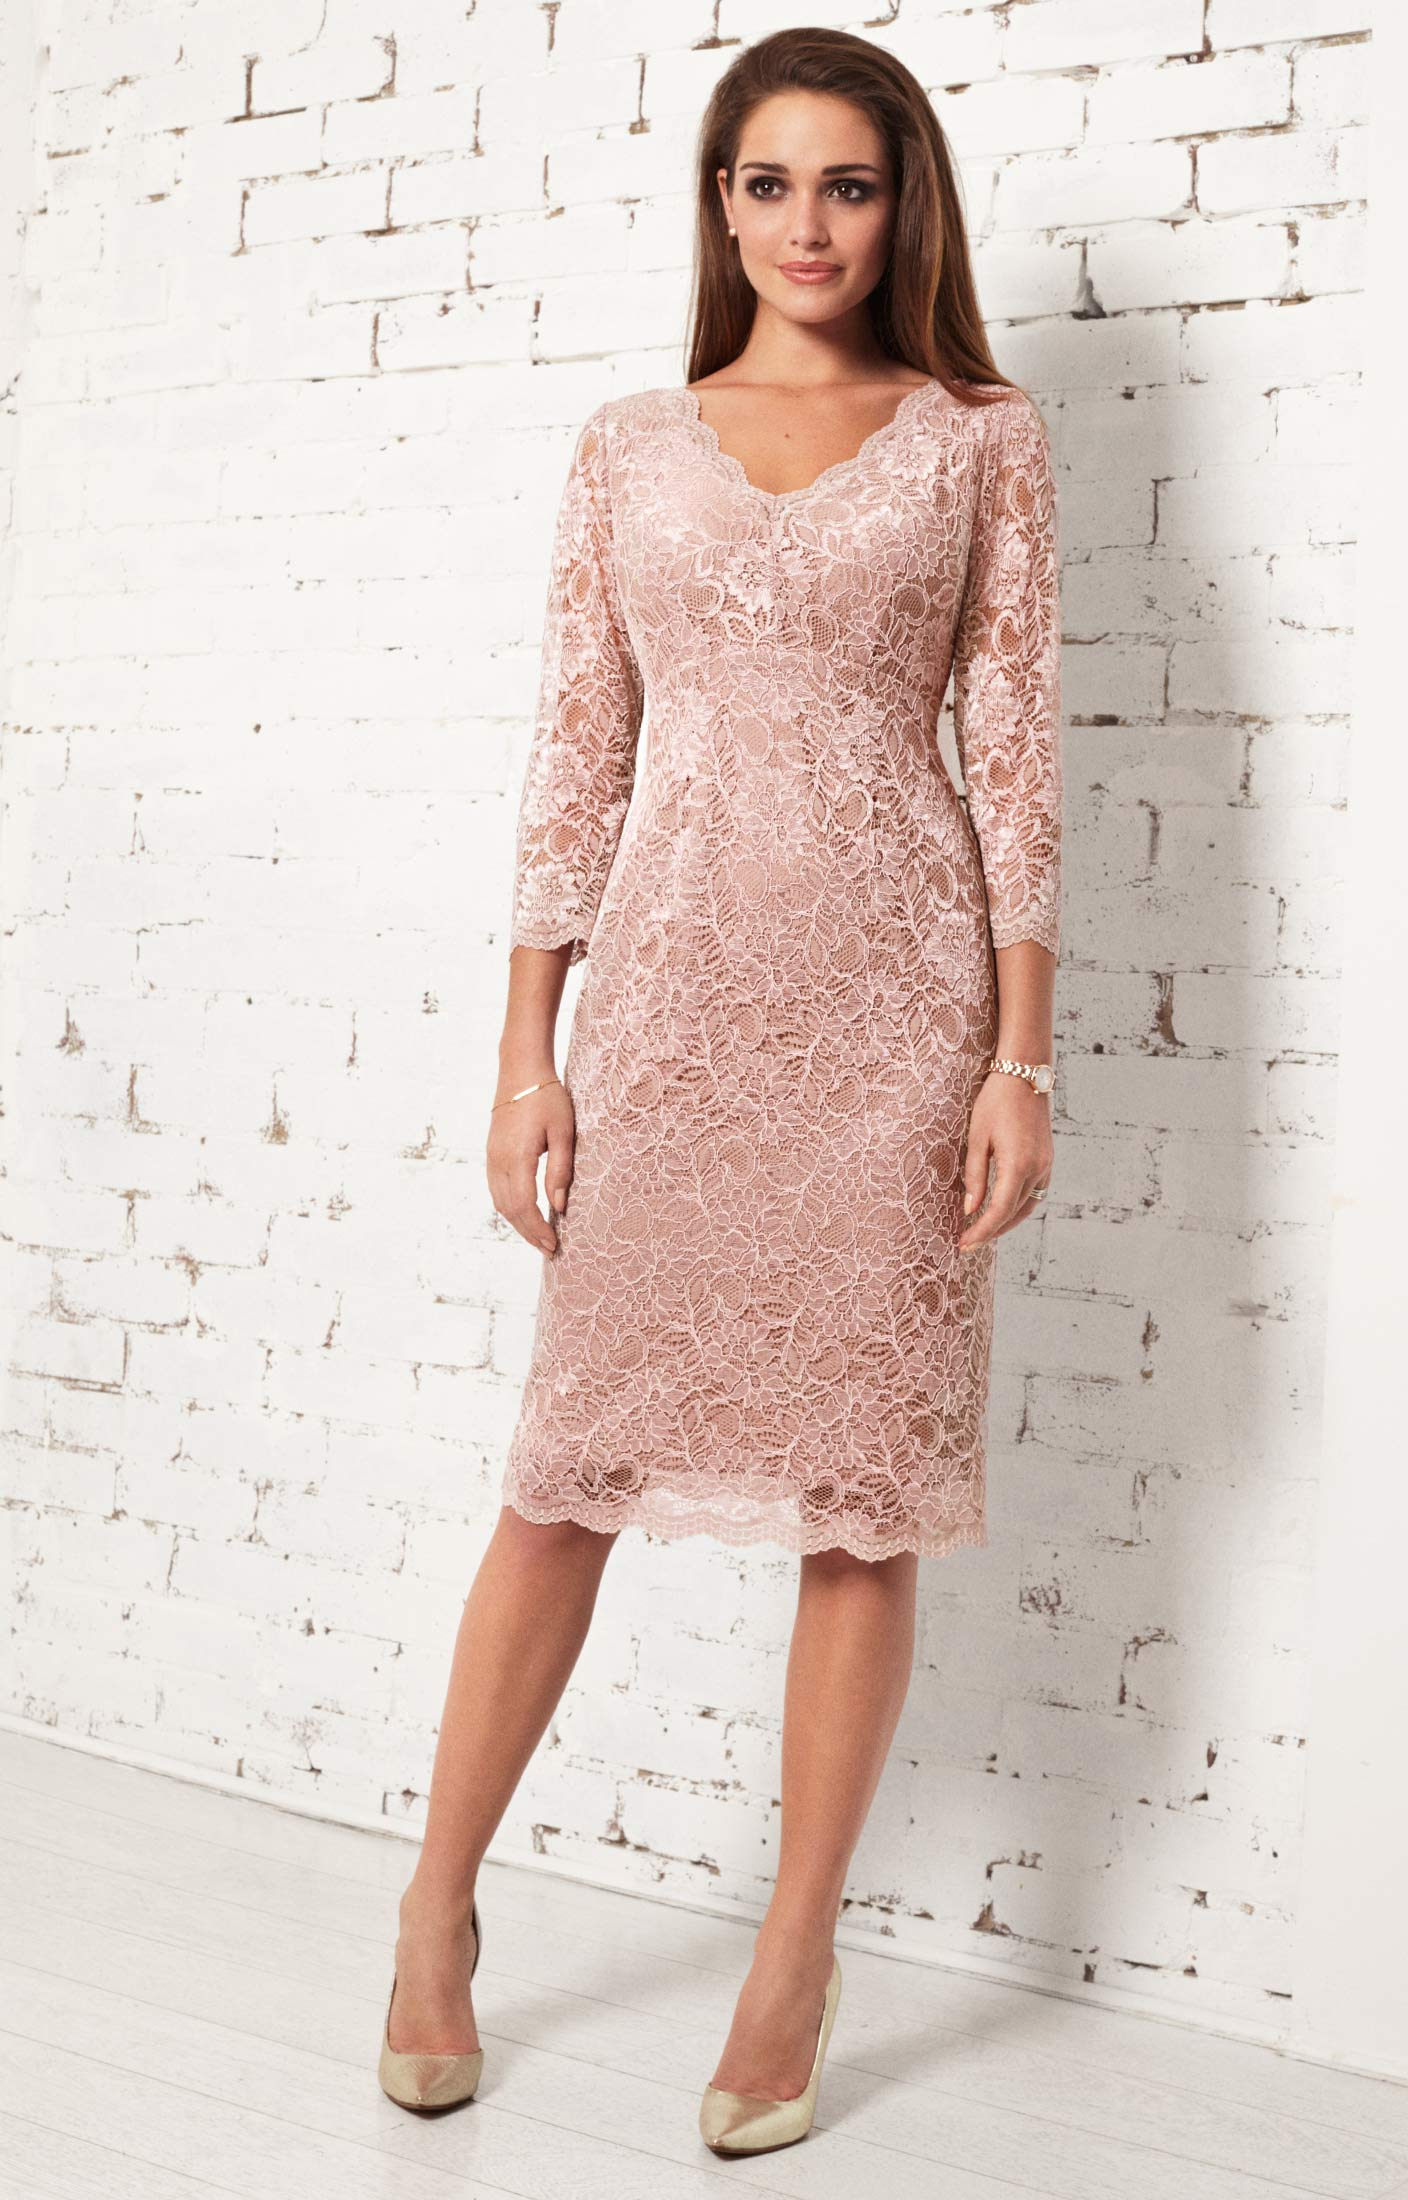 Blush Dress What Colour Shoes